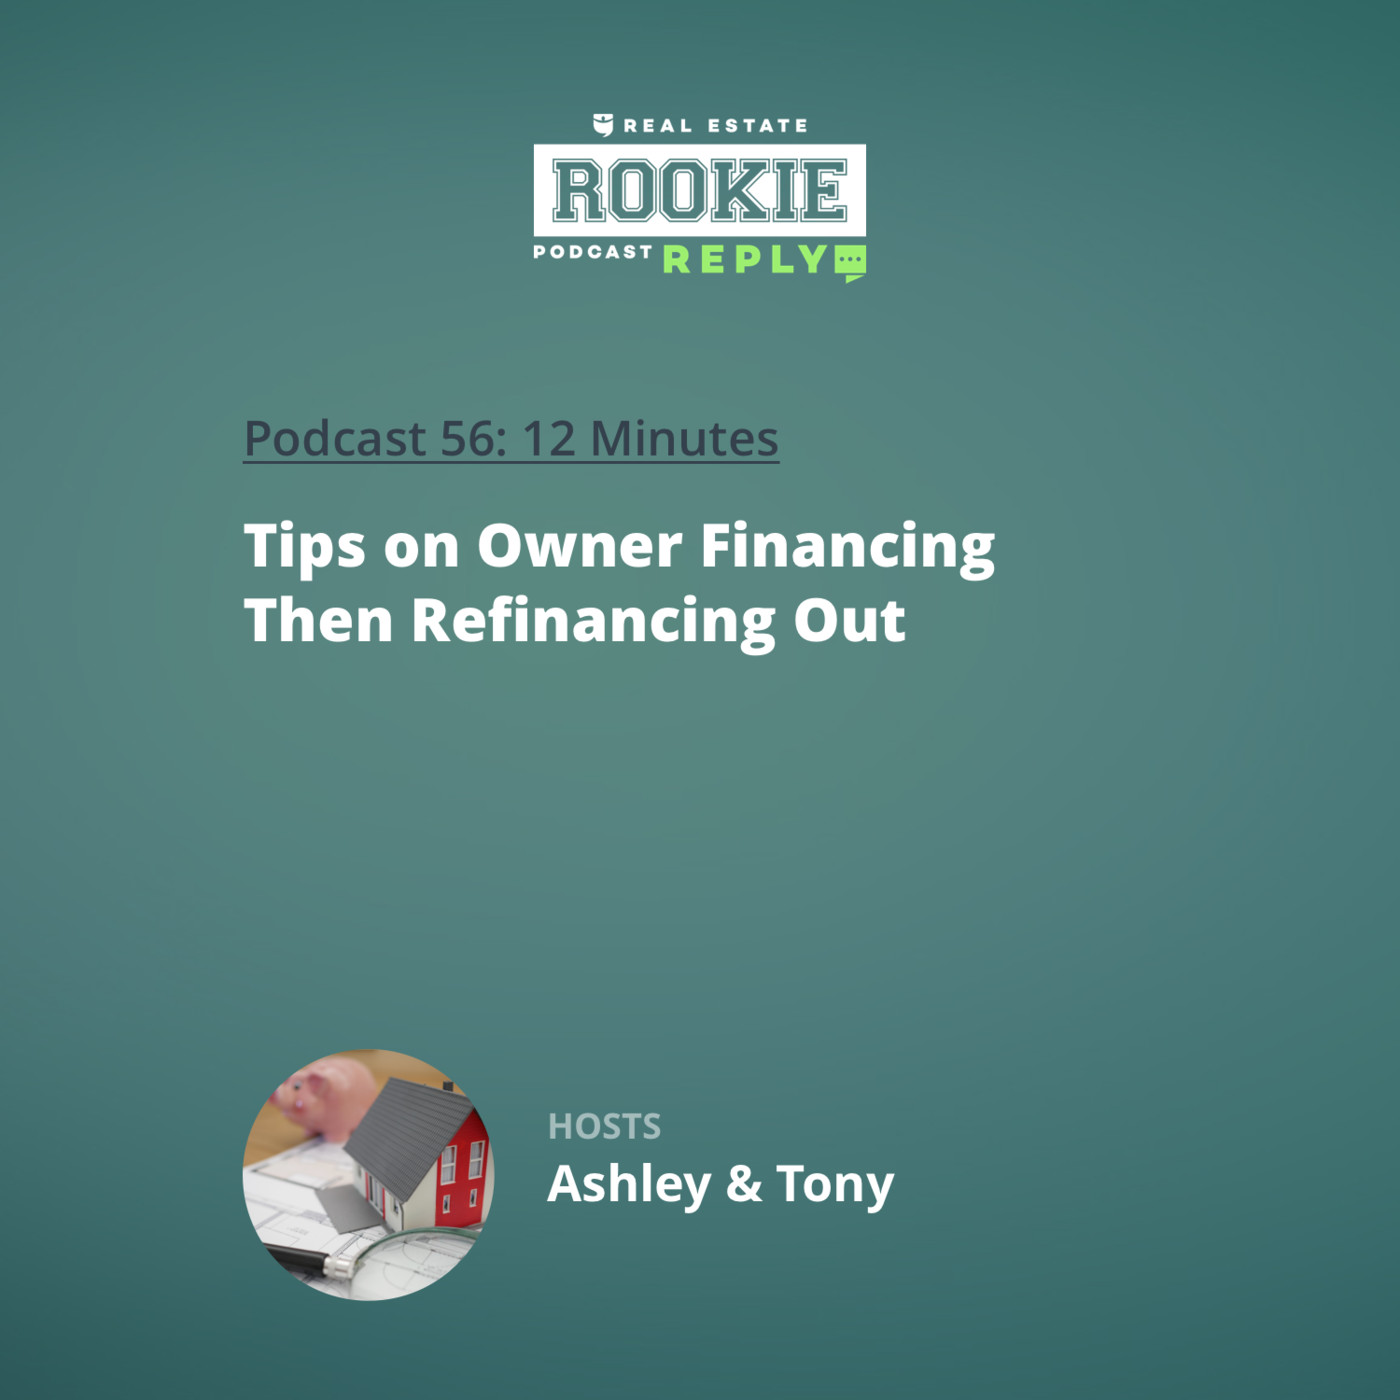 Rookie Reply: Tips on Owner Financing Then Refinancing Out